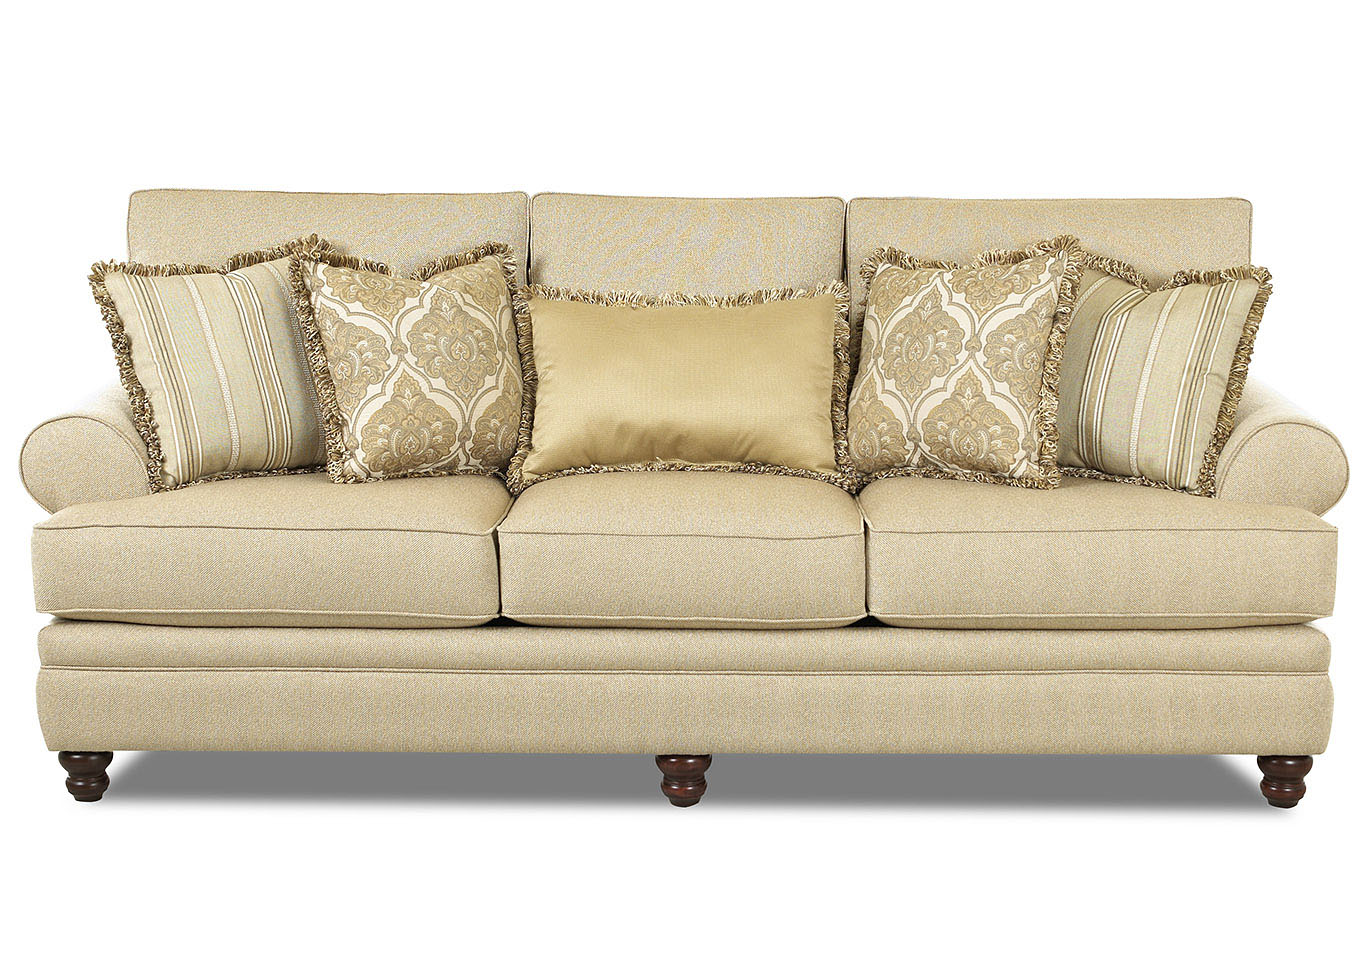 Darcy Milan-Straw Stationary Fabric Sofa,Klaussner Home Furnishings